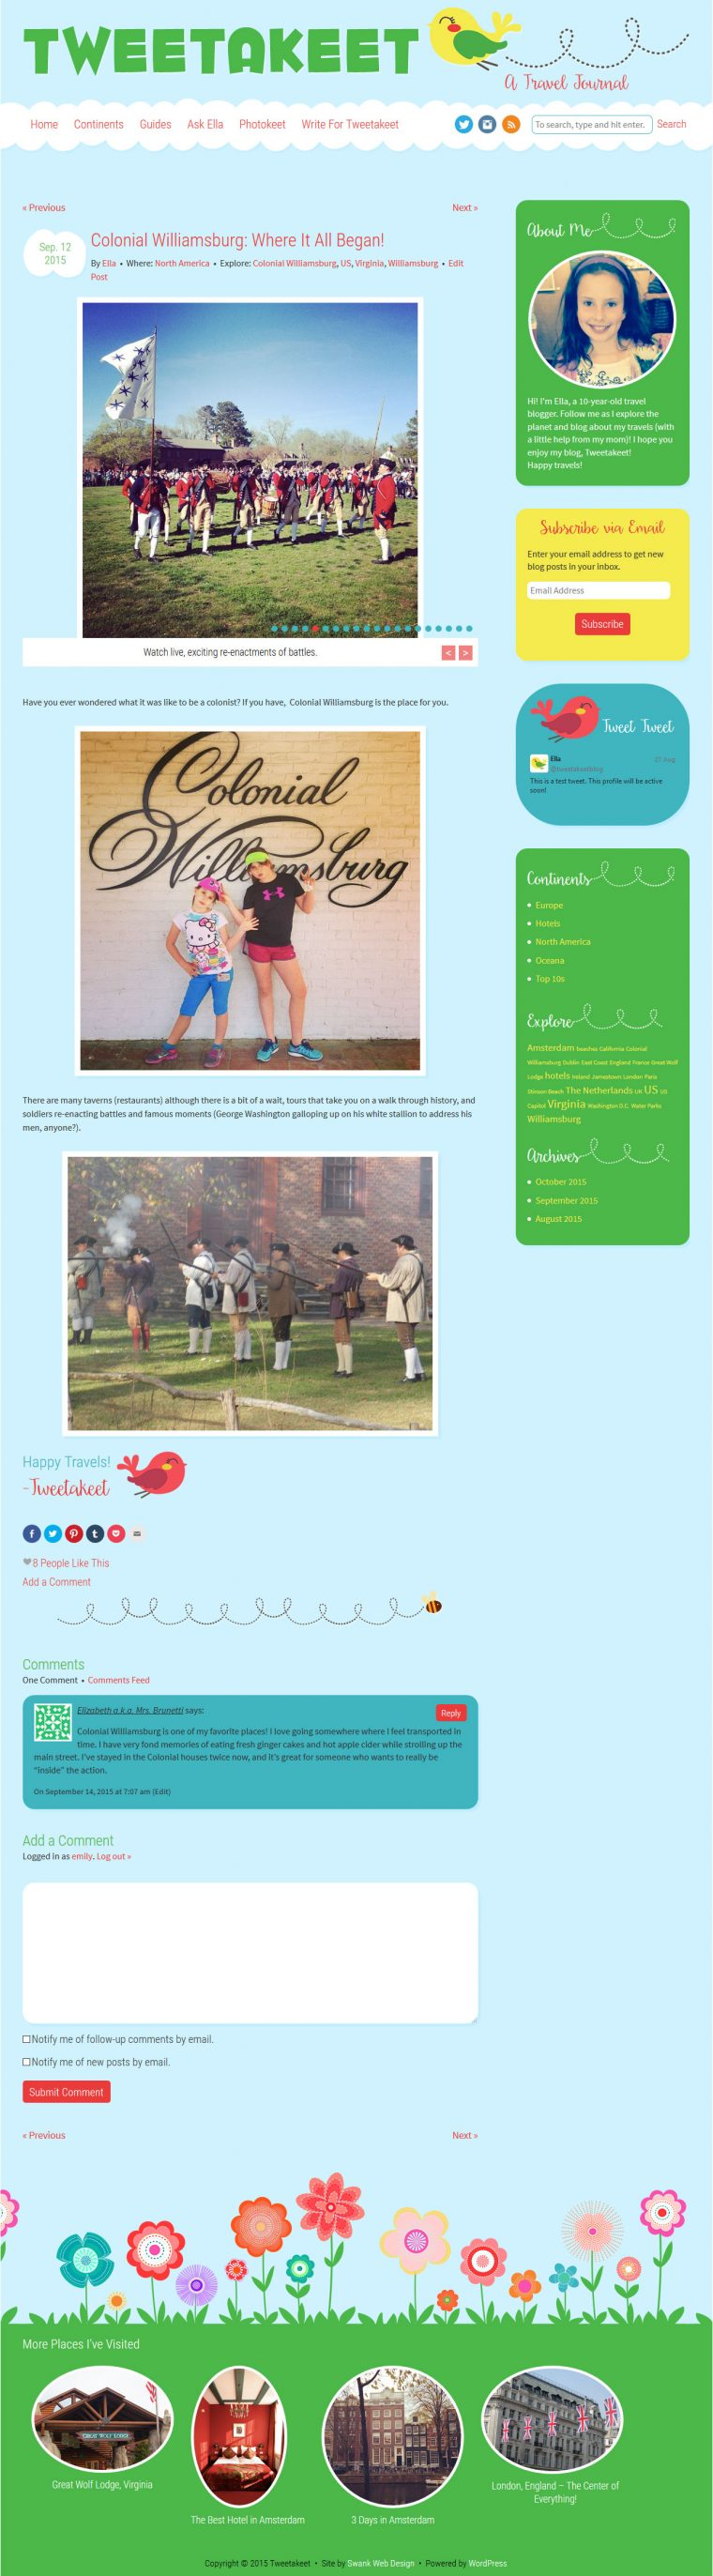 Blog Design for Tweetakeet by Swank Web Design